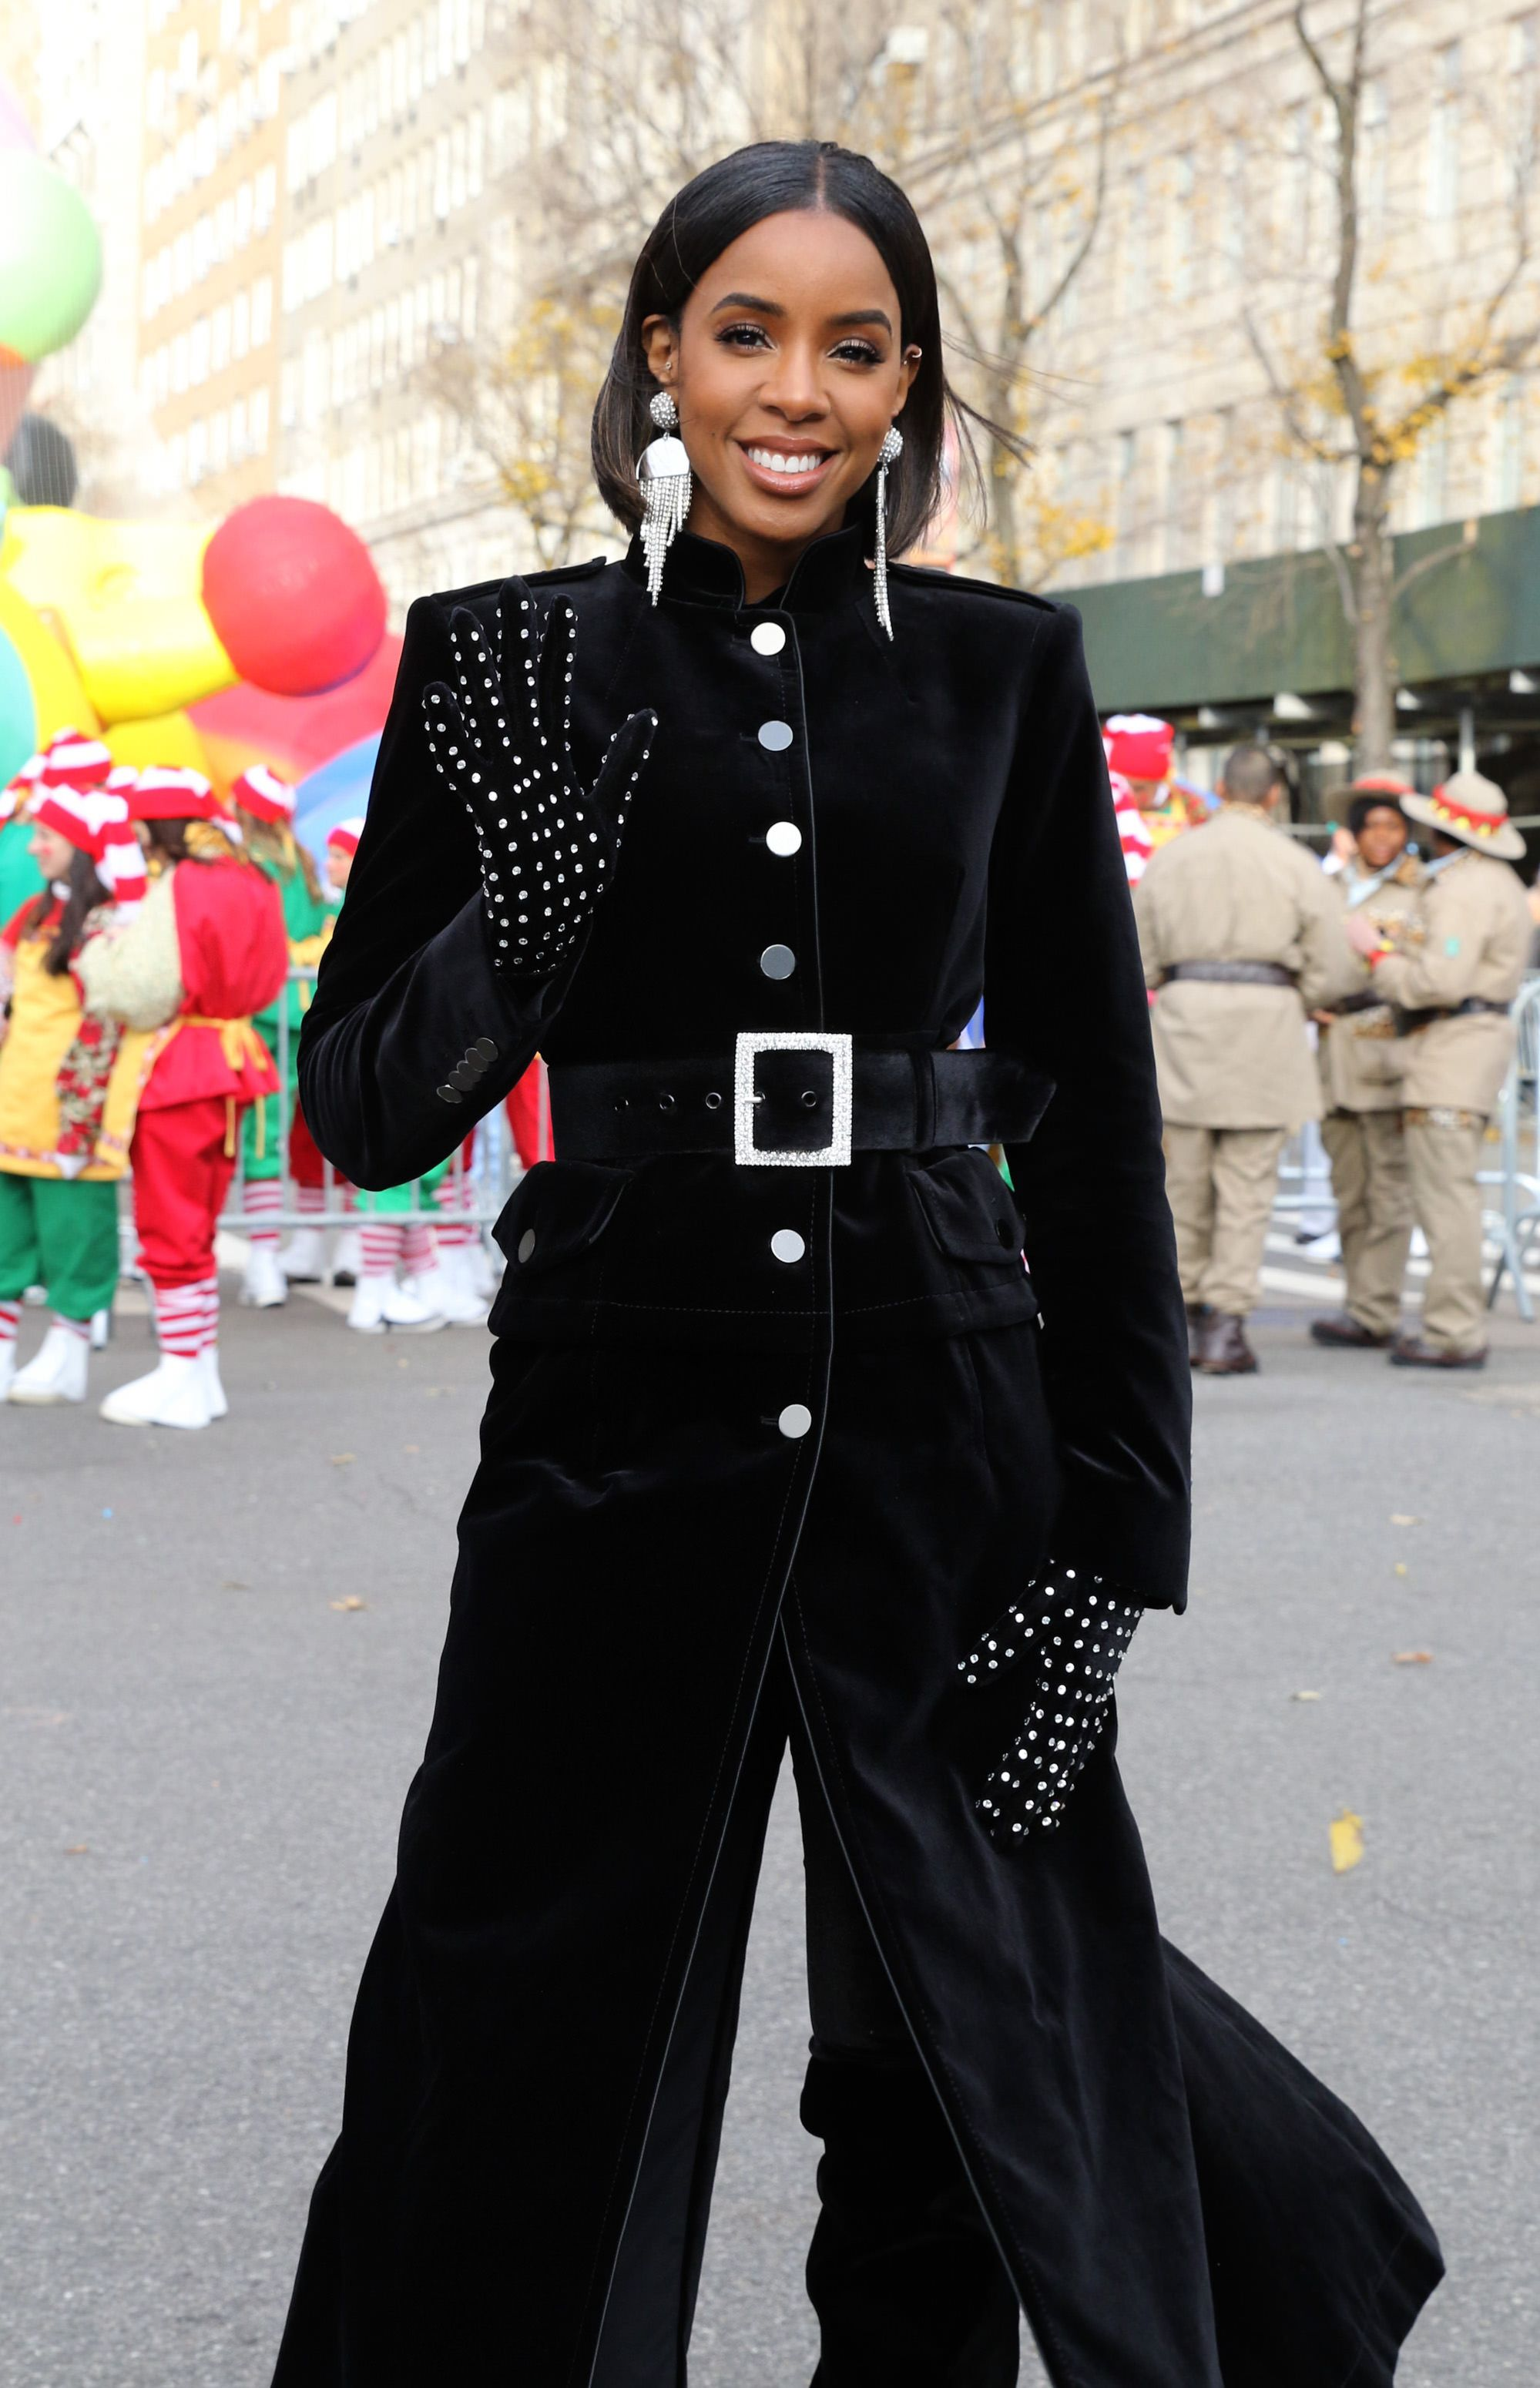 Kelly Rowland during the 93rd Annual Macy's Thanksgiving Day Parade on November 28, 2019 in New York City. | Source: Getty Images